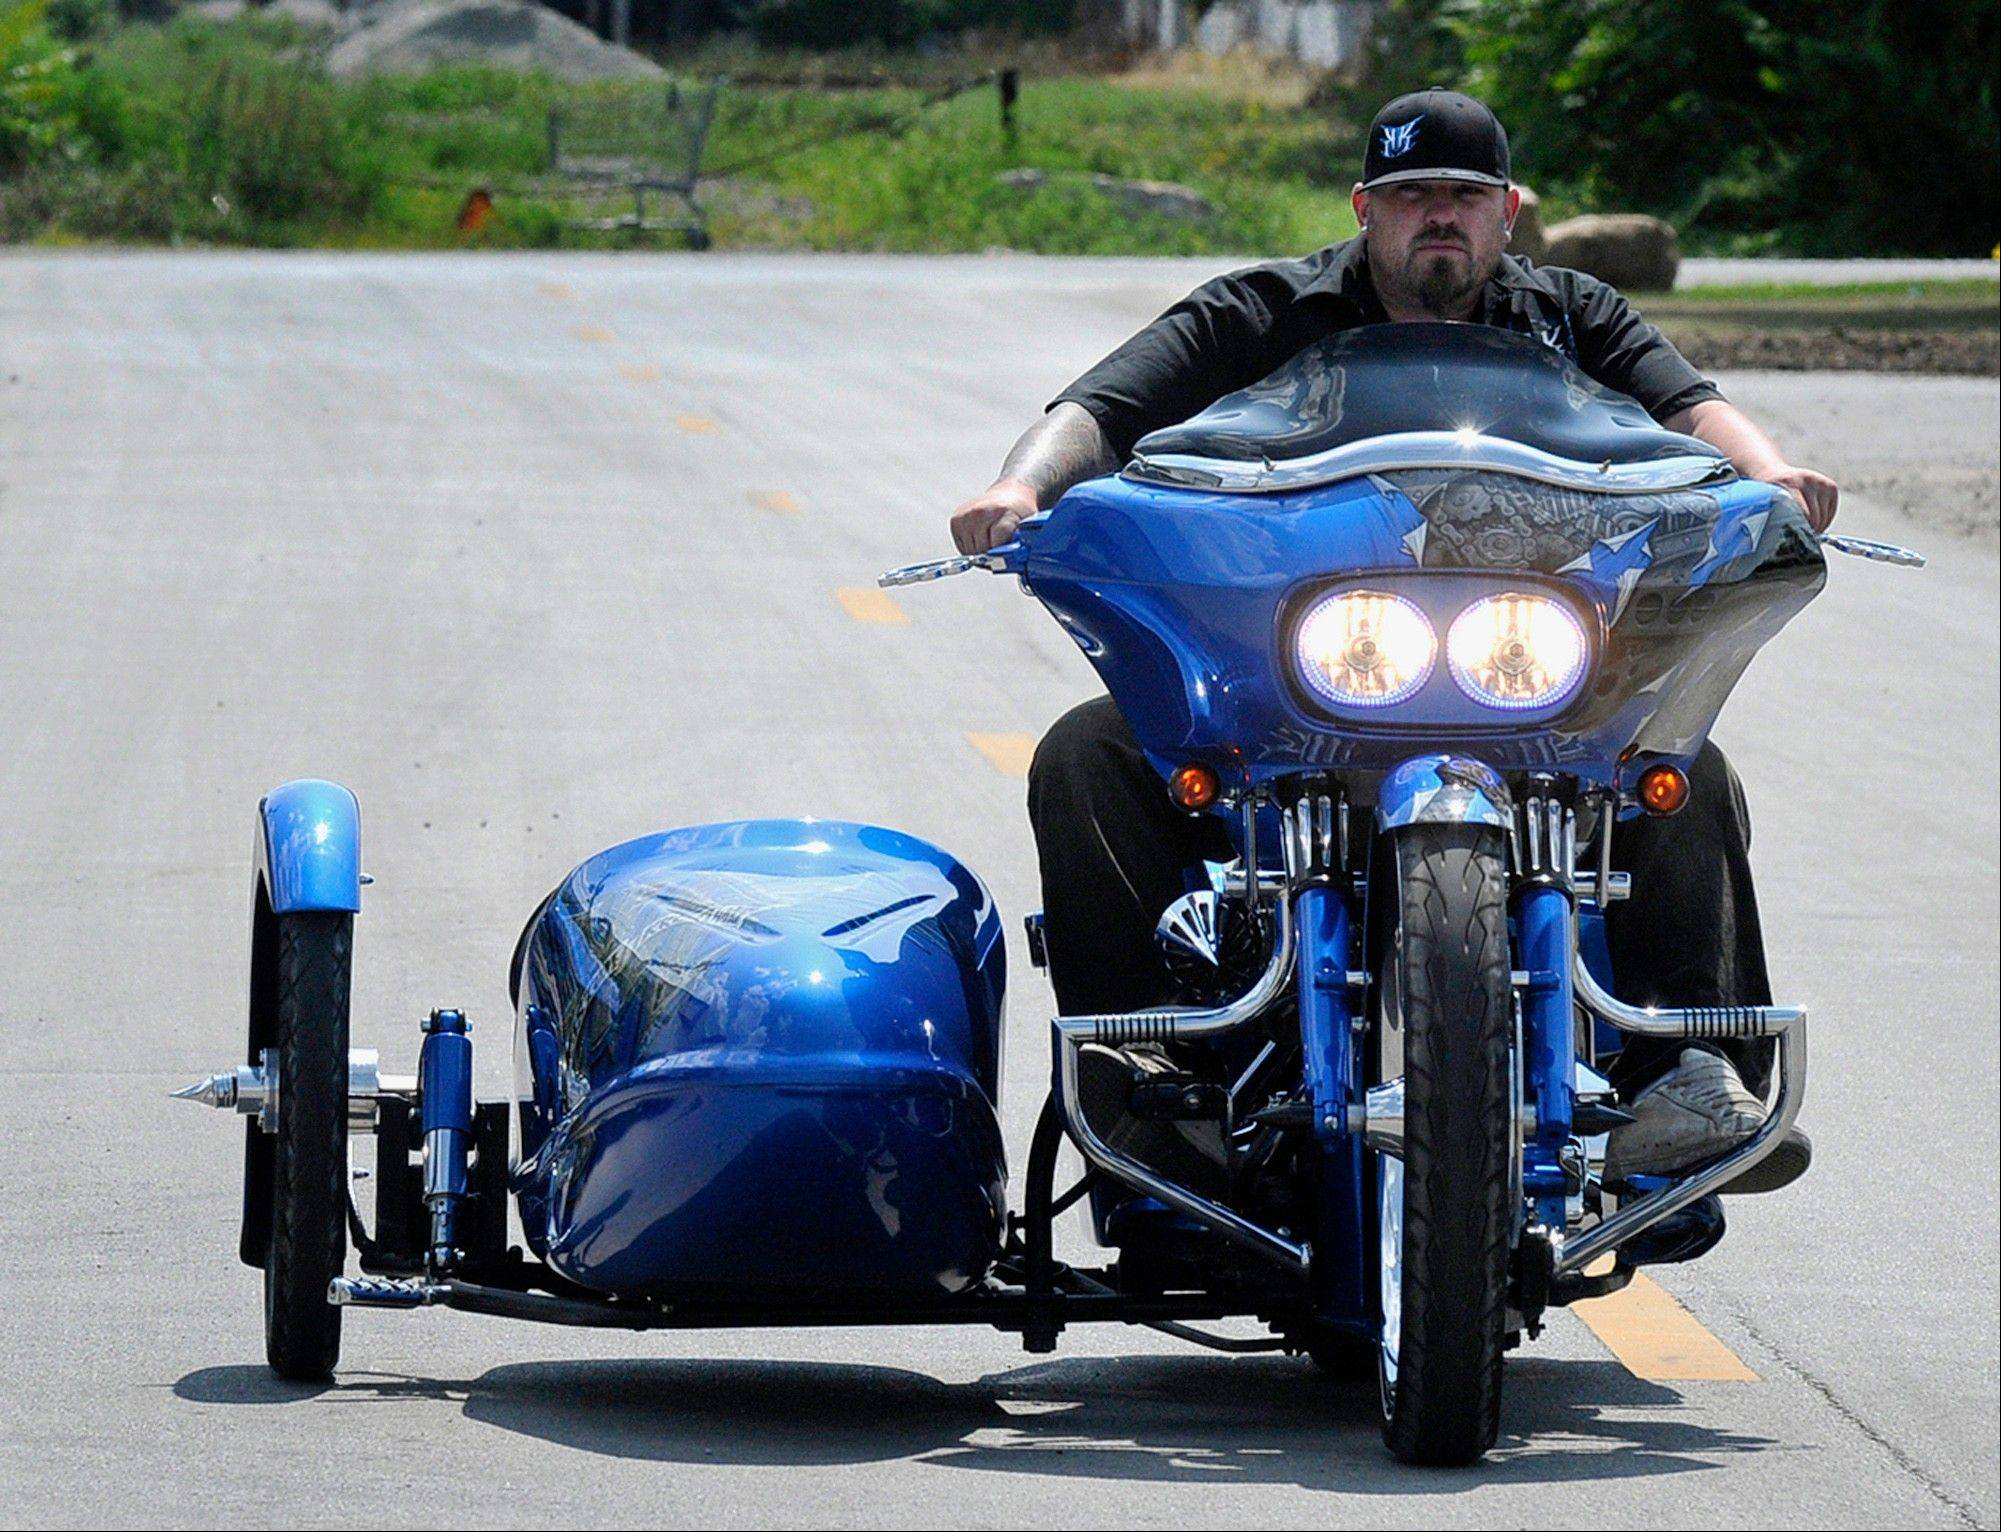 Artist Keith Kibbons rides his 2004 Harley-Davidson Road Glide in Kankakee. Kibbons customized and added a side car to the motorcycle after hitting a deer.